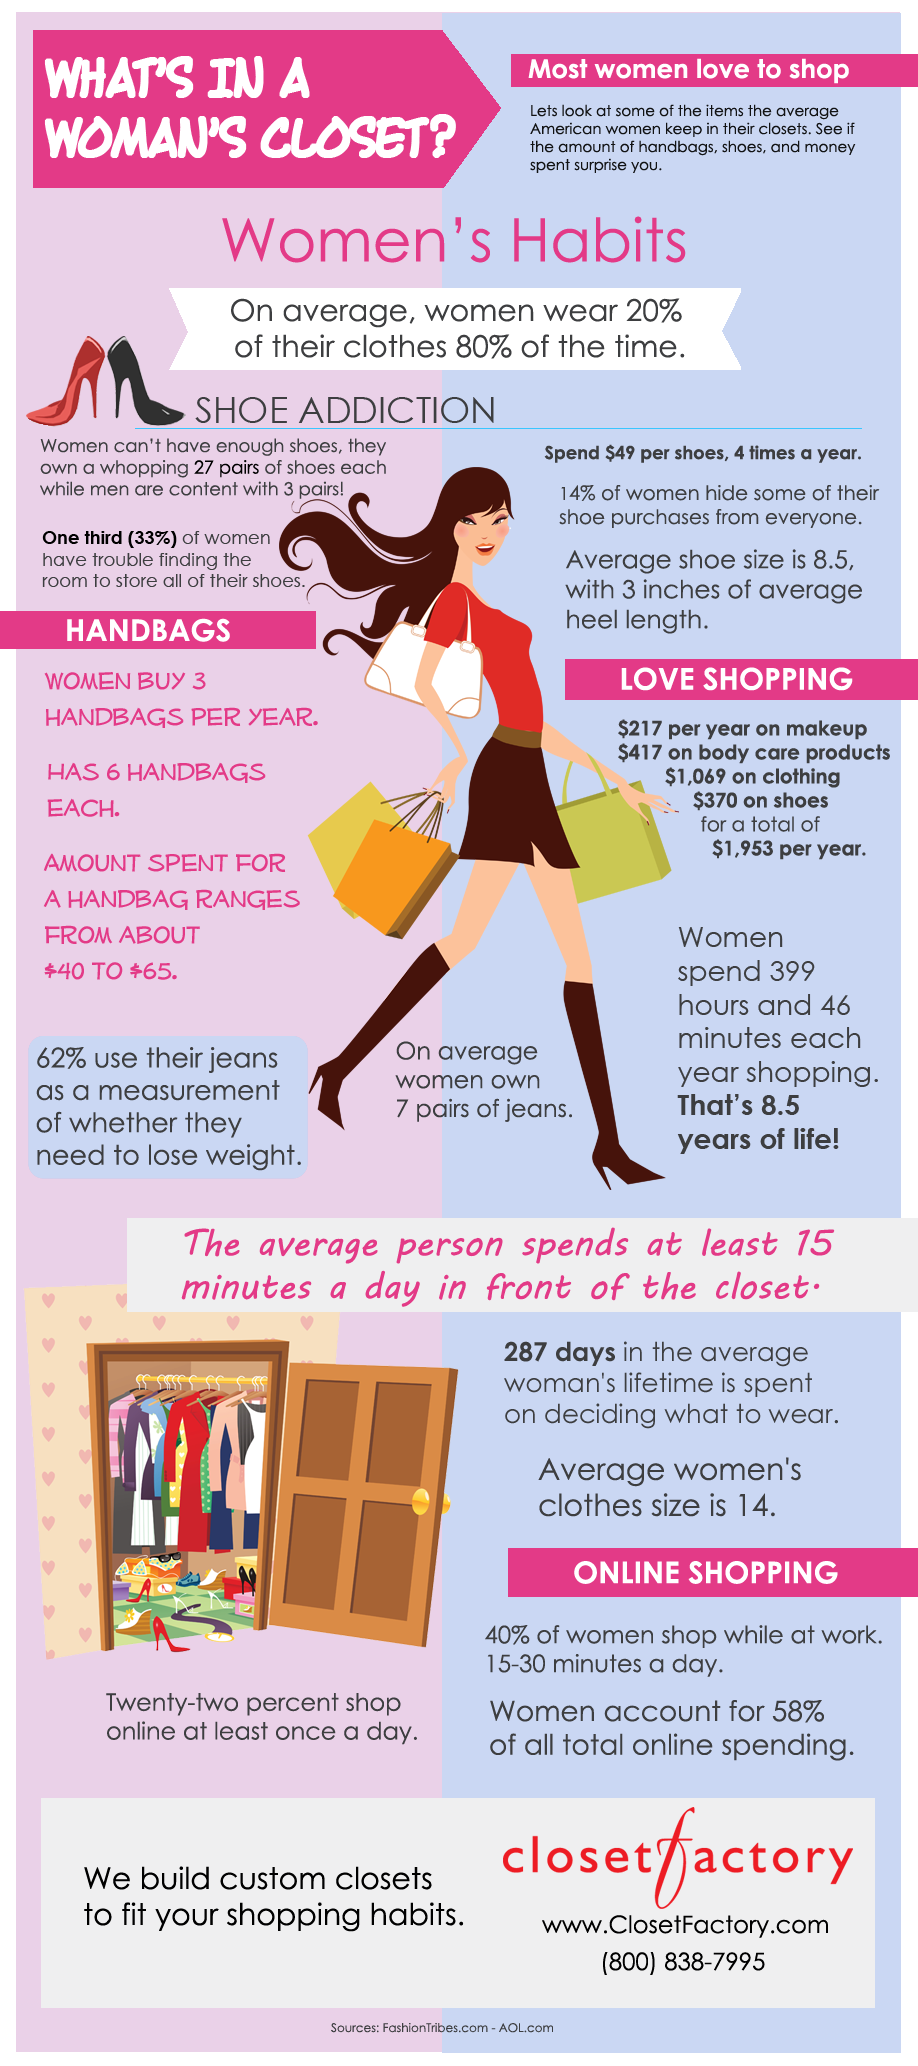 Women's Shopping Habits Infographic by Closet Factory